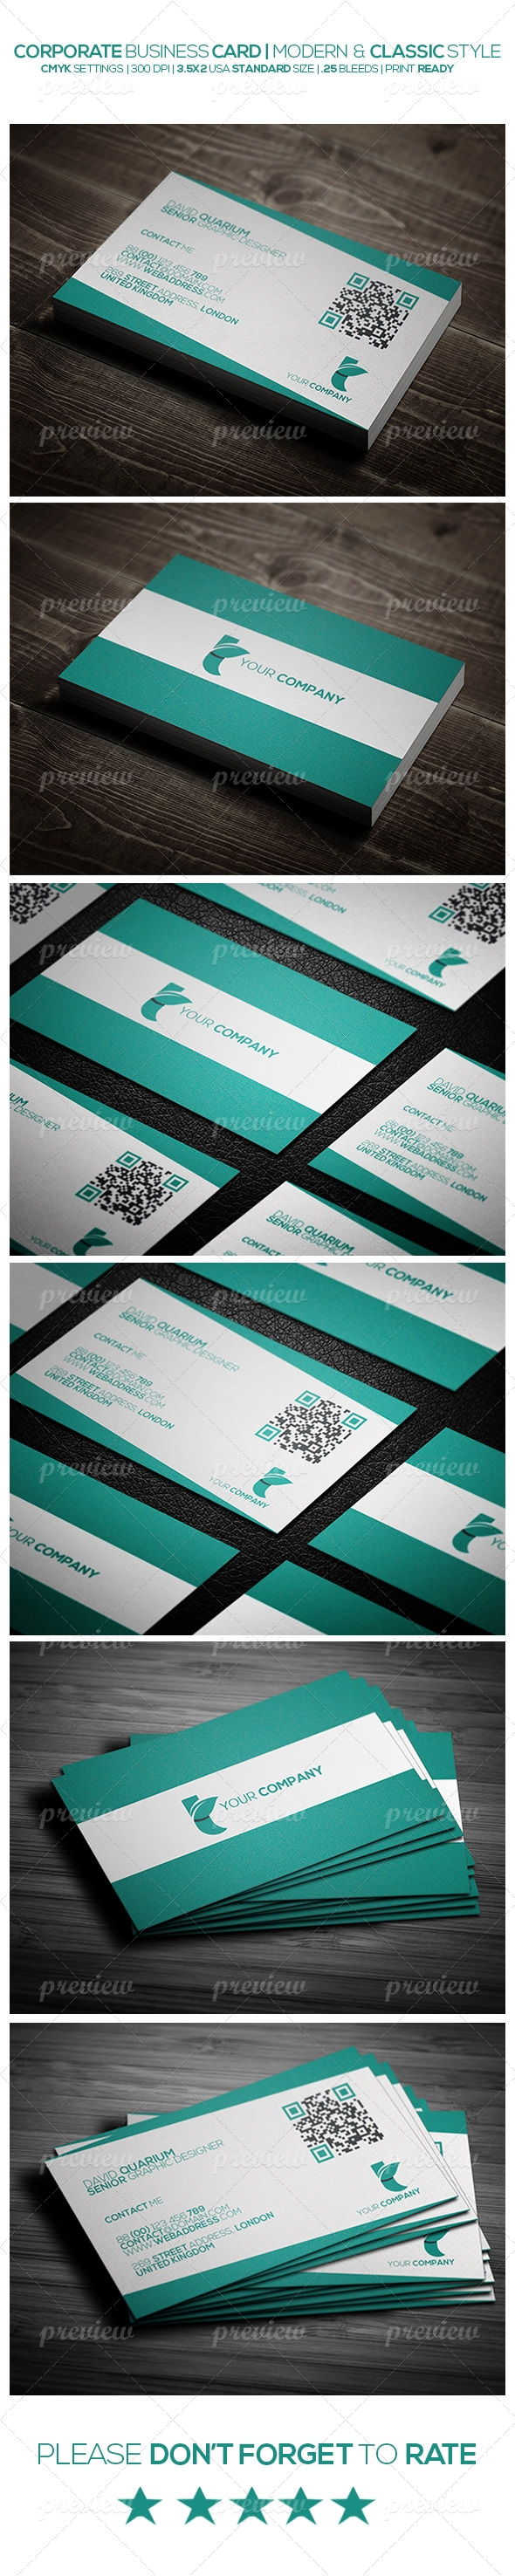 Modern And Classic Style Corporate Business Card